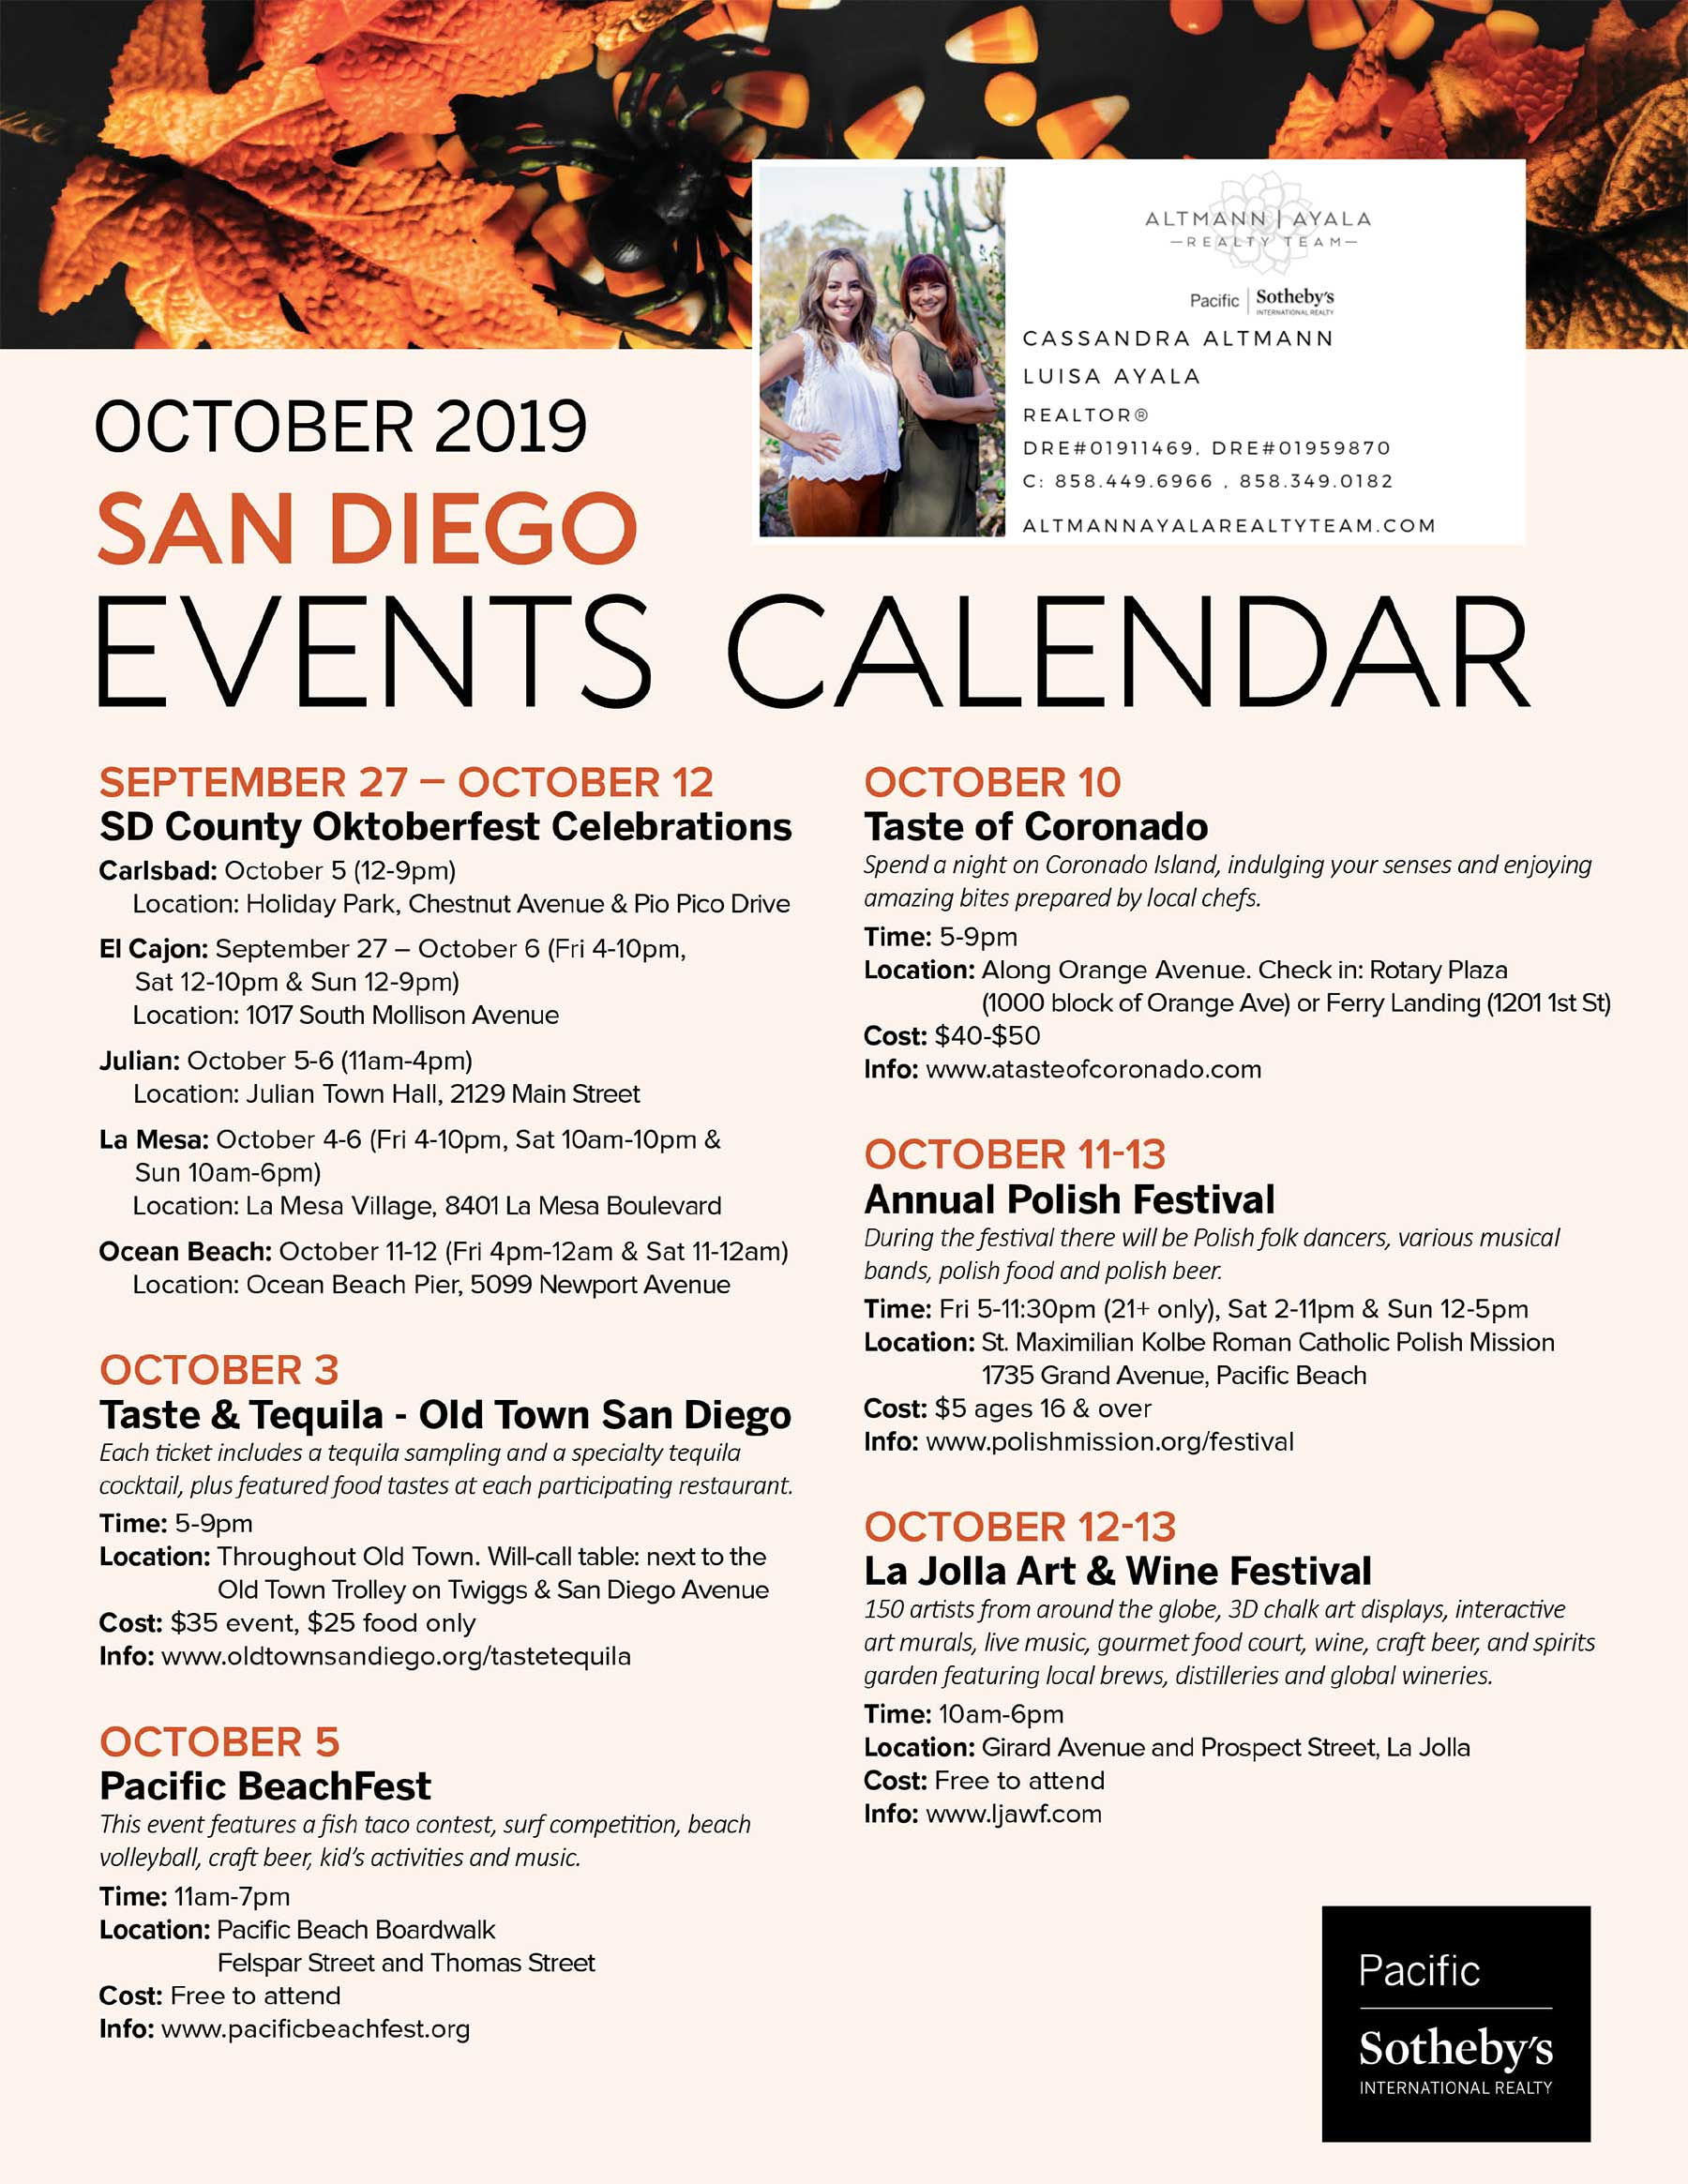 October 2019 San Diego Events Calendar